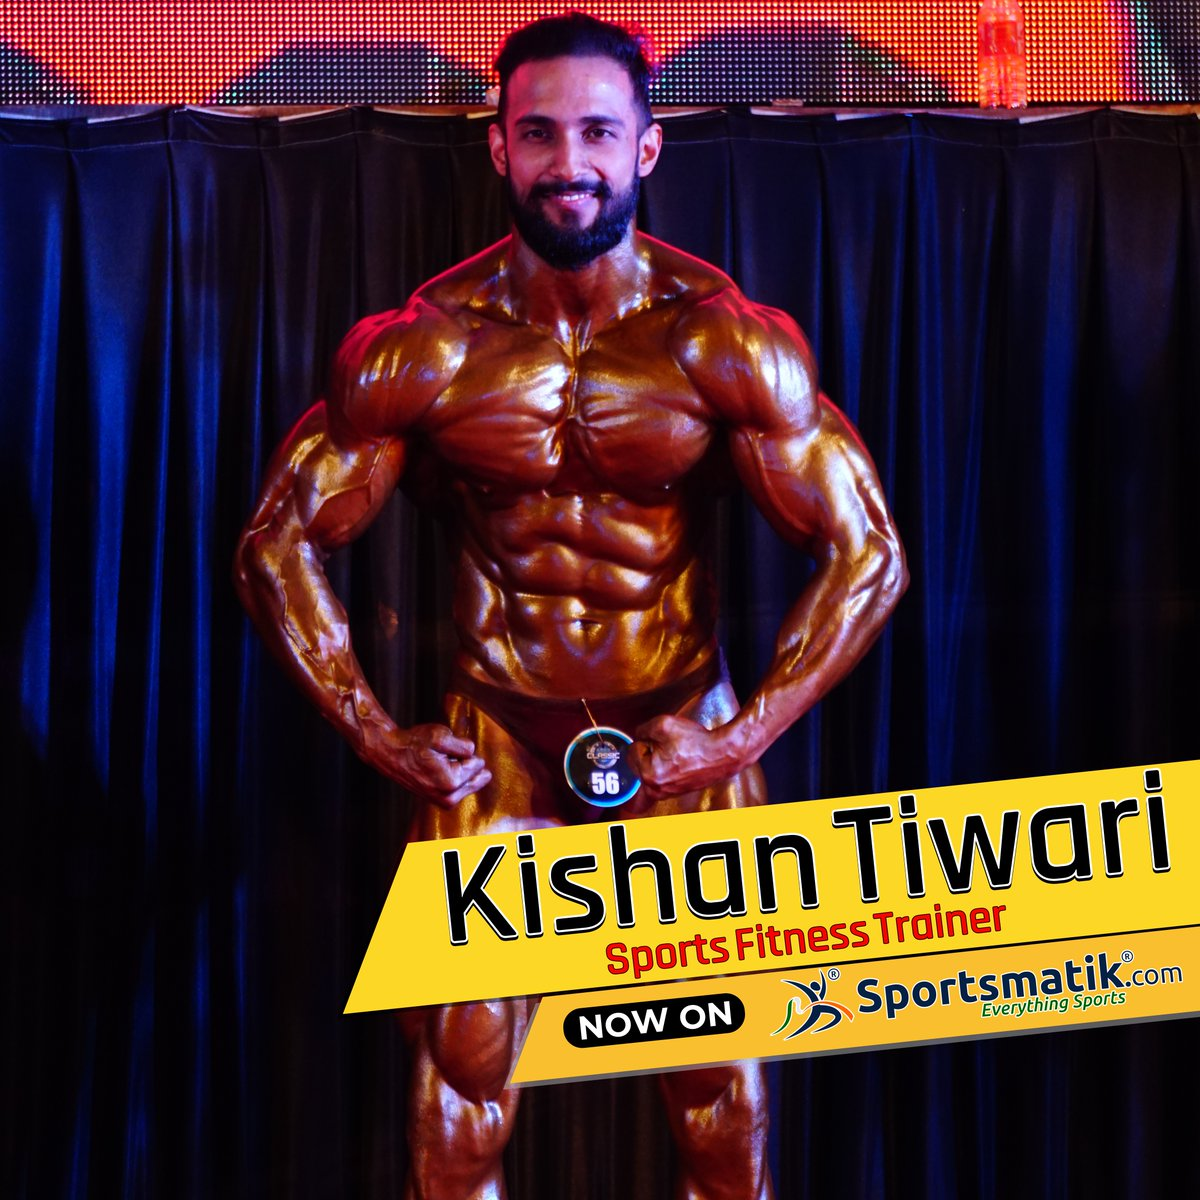 Body-building coach #KishanTiwari who has 15 years of #experience in lifting weights , #won several #Bodybuilding shows, #trained many body-builders, is now available at Sportsmatik. Connect with him by registering with us!https://sportsmatik.com/fitness-trainer/kishantiwari…